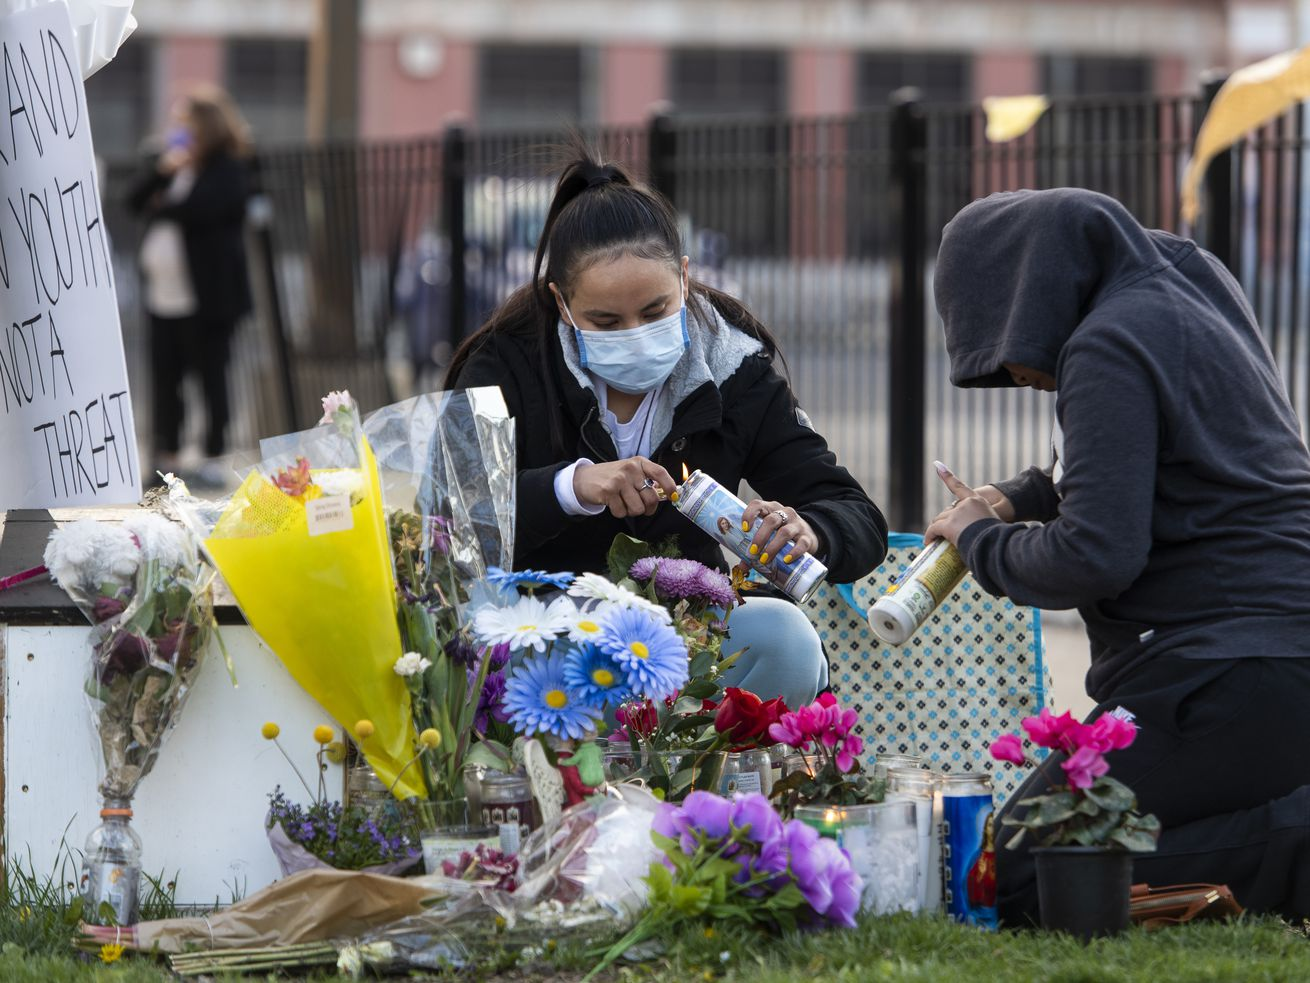 Two women from Little Village tend to the memorial for Adam Toledo near 24th St. and Sawyer Avenue. Toledo, a 13-year-old, was shot and killed by a Chicago police officer.